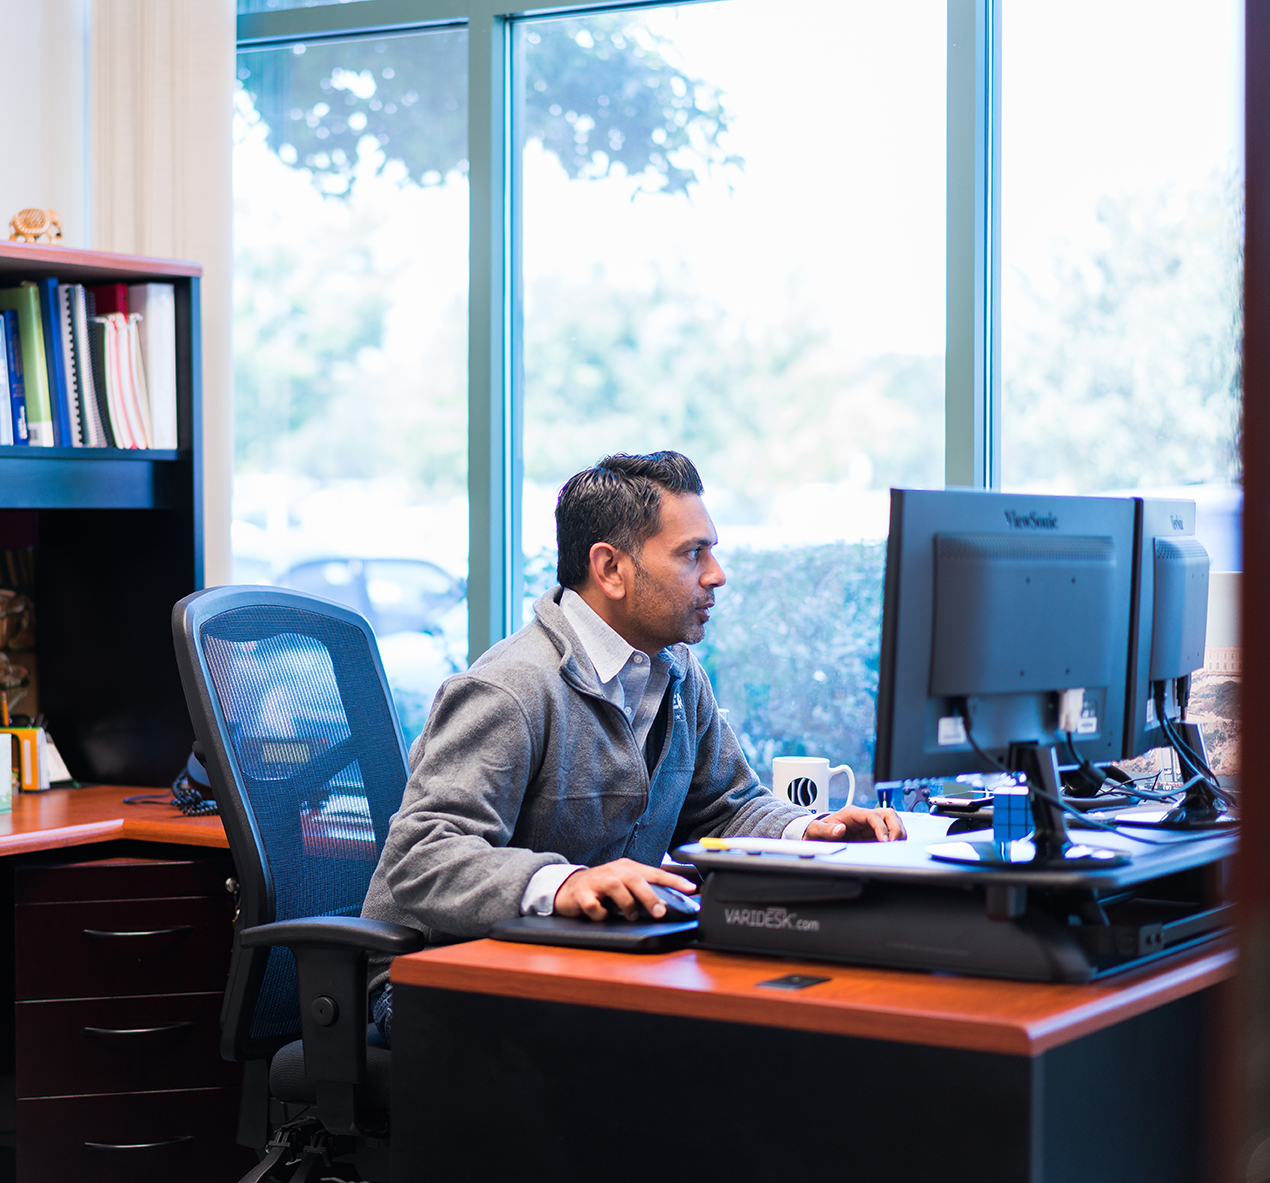 meyer employee at his desk reading his computer